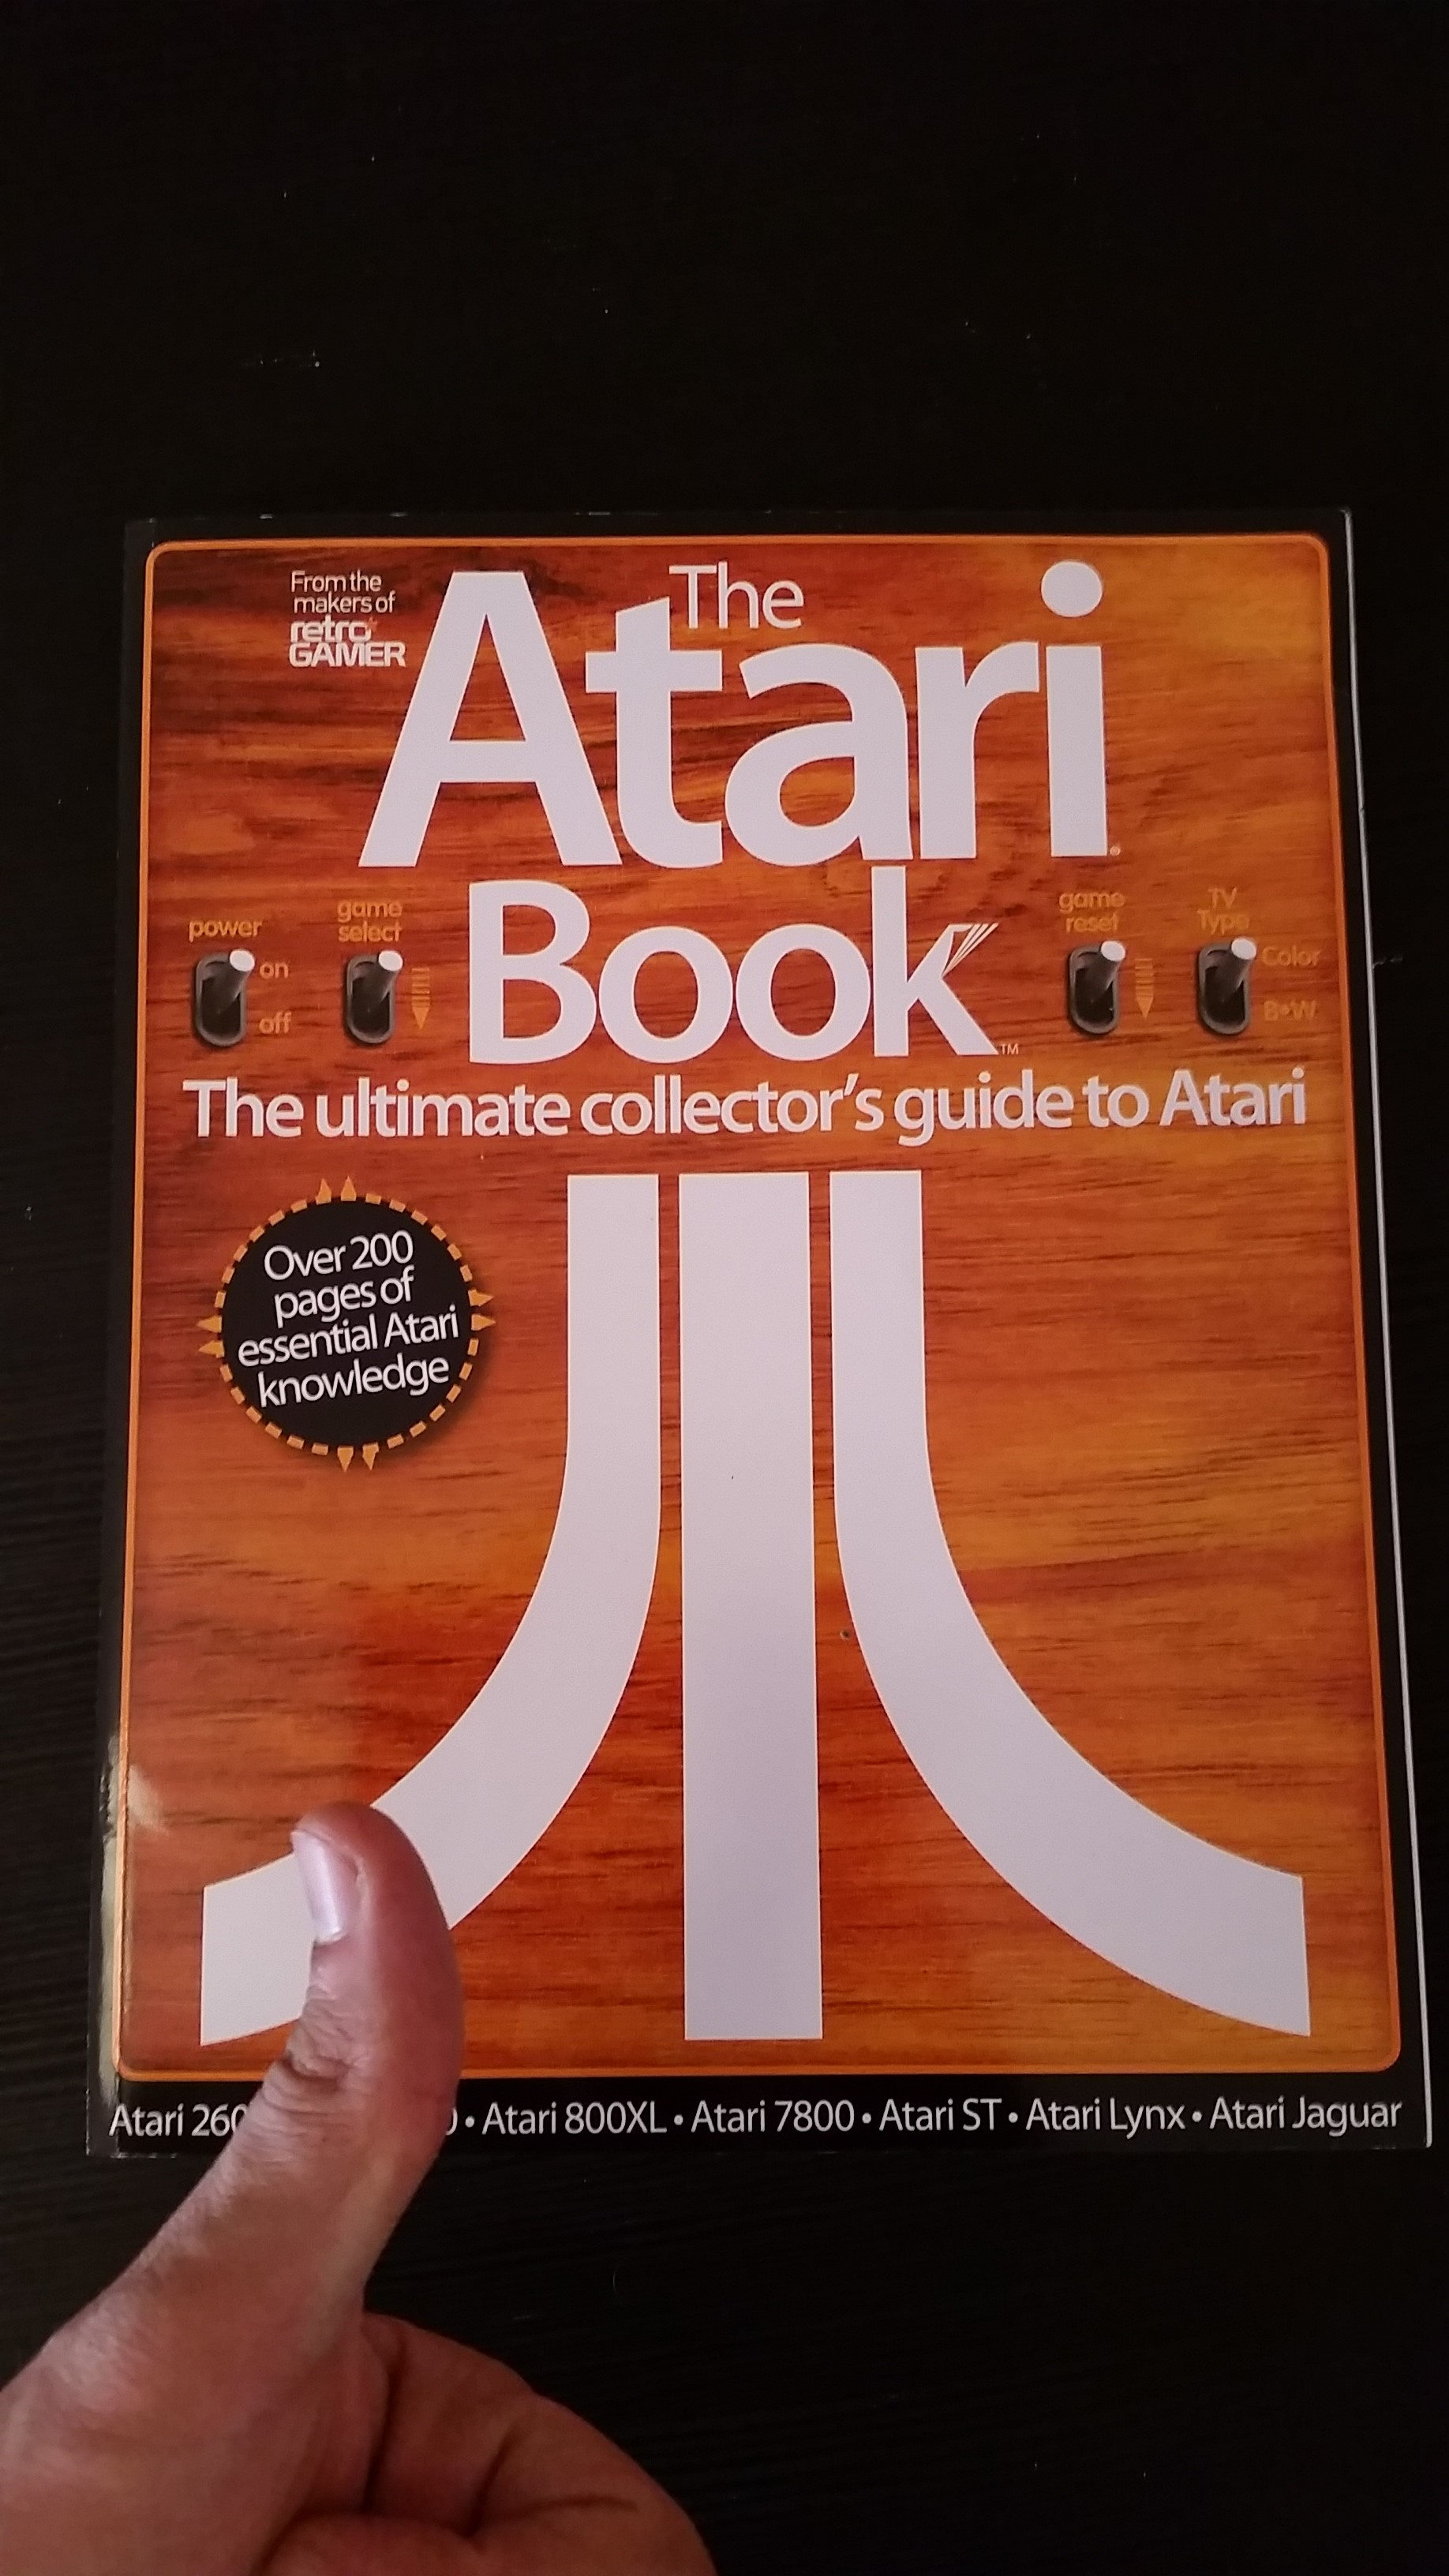 [Games to Read] The Atari Book